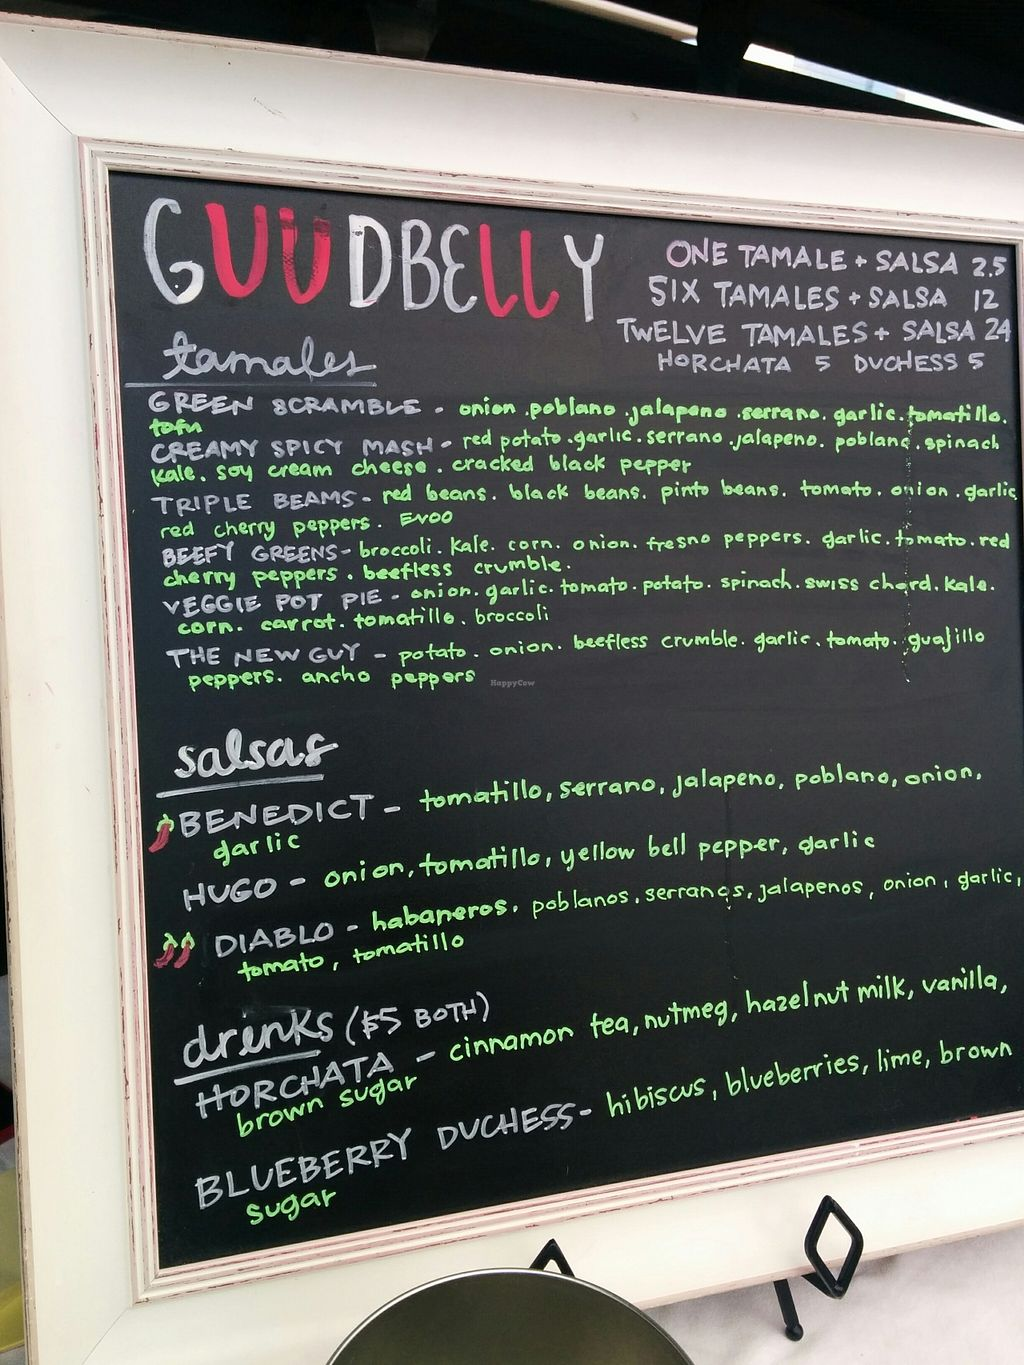 """Photo of CLOSED: Guudbelly  by <a href=""""/members/profile/MizzB"""">MizzB</a> <br/>Expanded menu, more vegan tamale goodness to enjoy! <br/> March 14, 2016  - <a href='/contact/abuse/image/64880/140002'>Report</a>"""